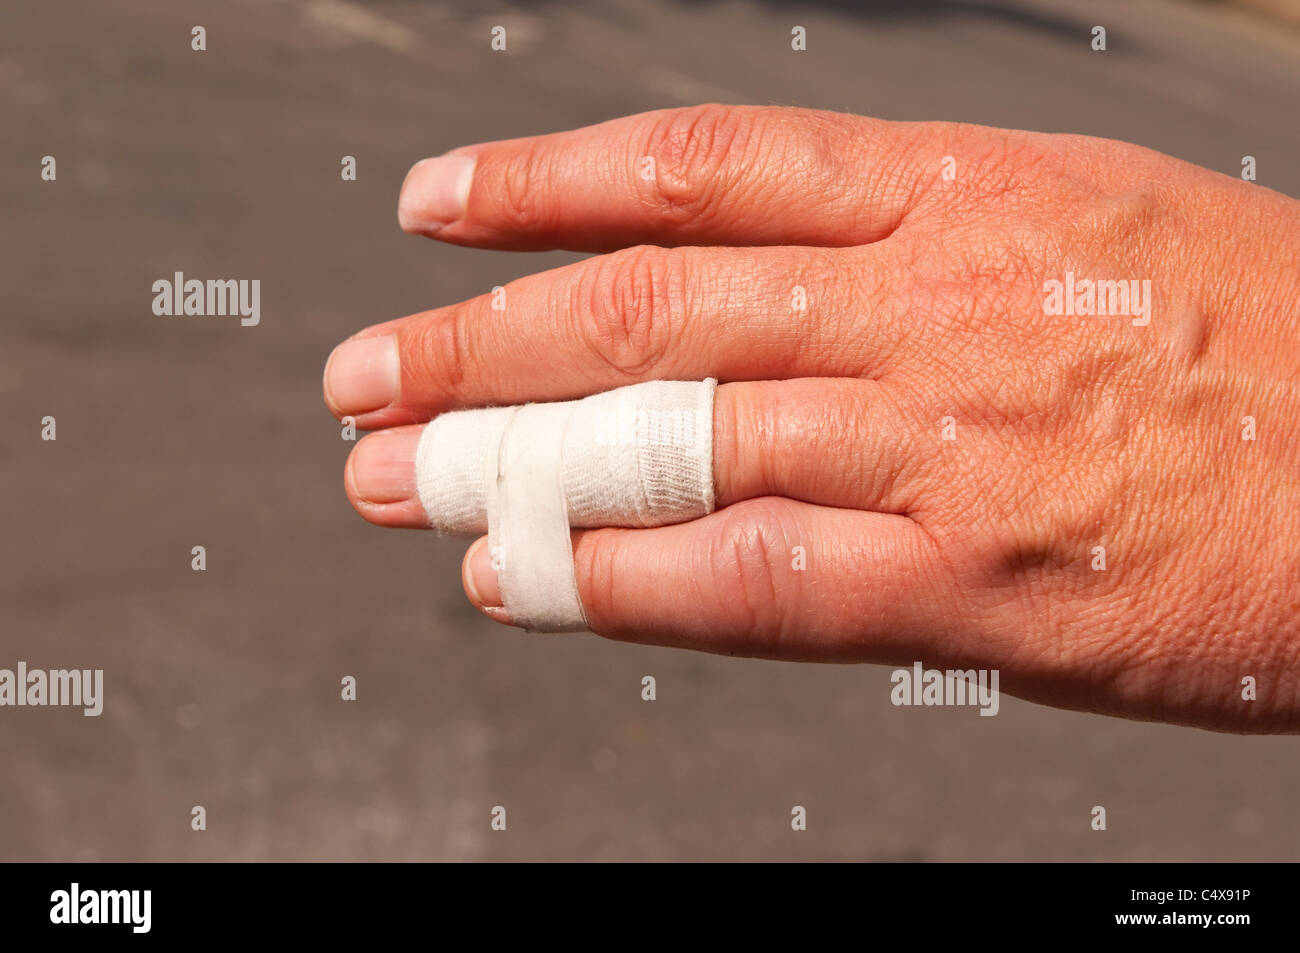 A close up of a mans hand showing a bandage and a dislocated finger trying to heal - Stock Image